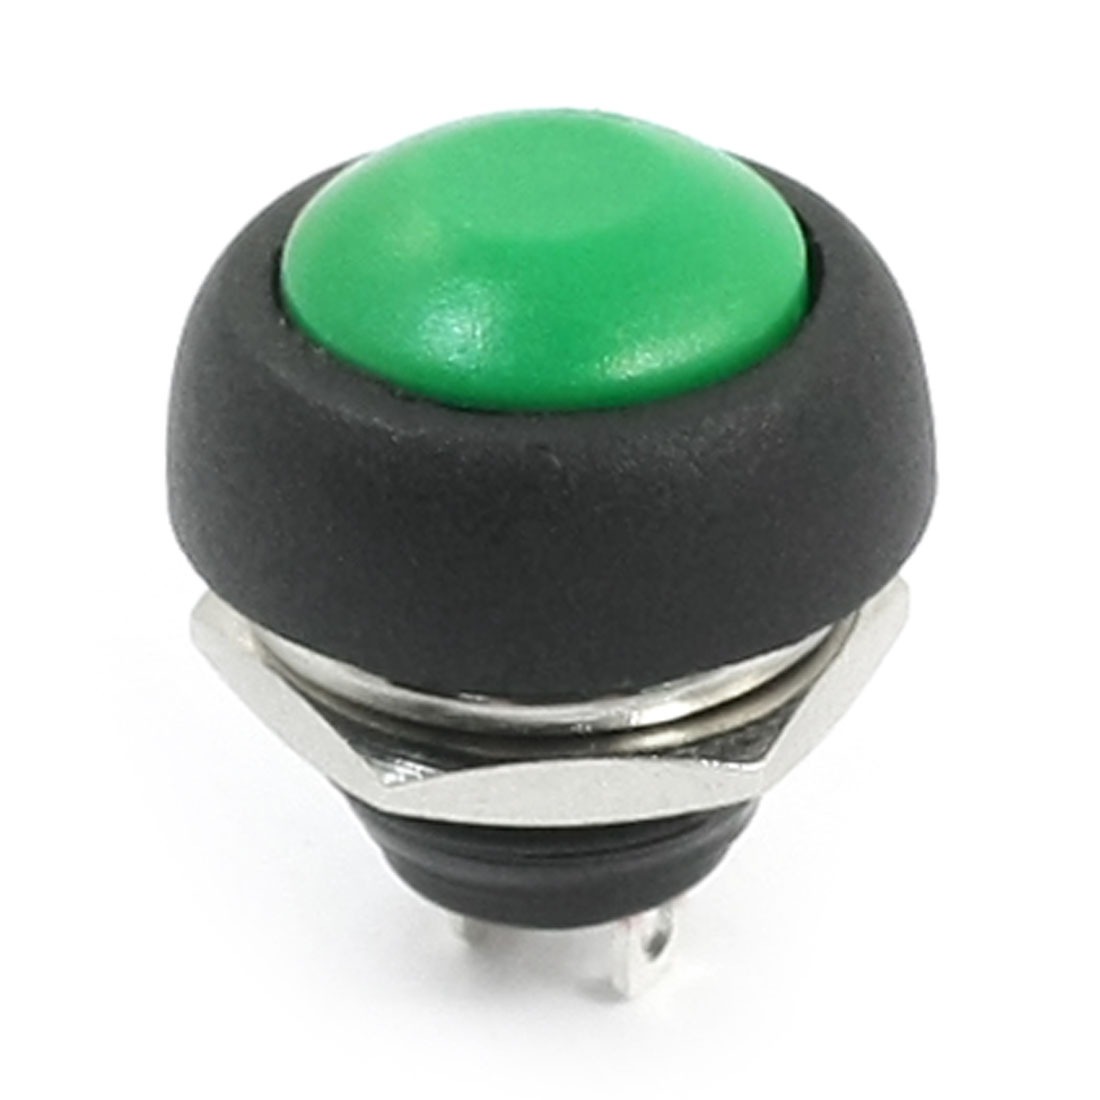 12mm Thread Panel Mounted SPST OFF/ON 2-Terminal Momentary Green Round Head Plastic Push Button Switch